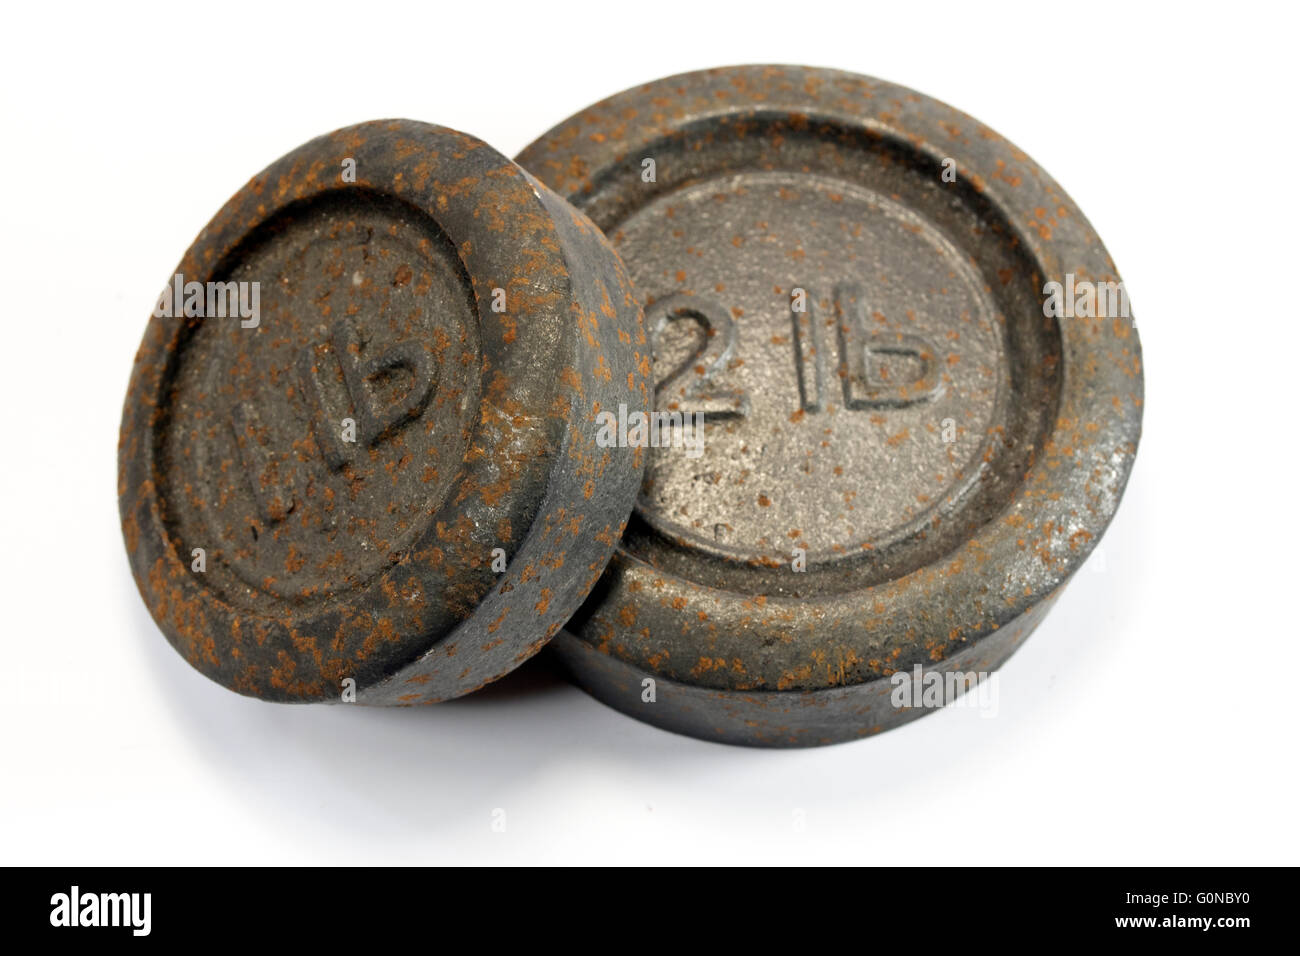 Vintage Weighing Weights 1lb and 2lb - Stock Image